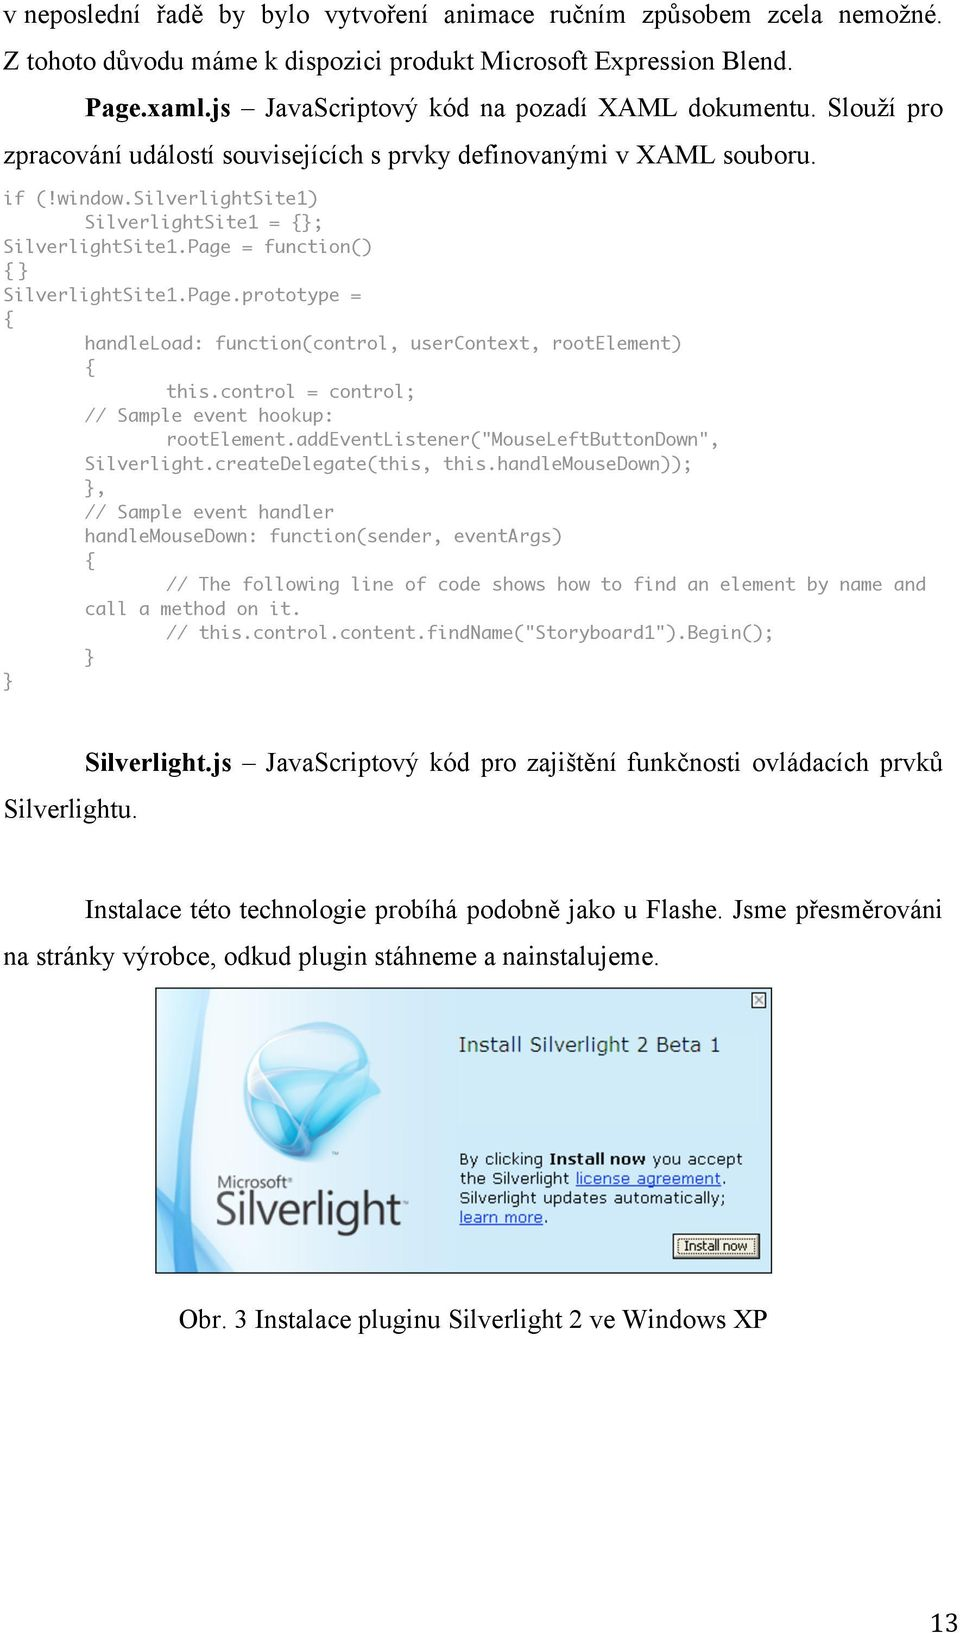 = function() { } SilverlightSite1.Page.prototype = { handleload: function(control, usercontext, rootelement) { this.control = control; // Sample event hookup: rootelement.